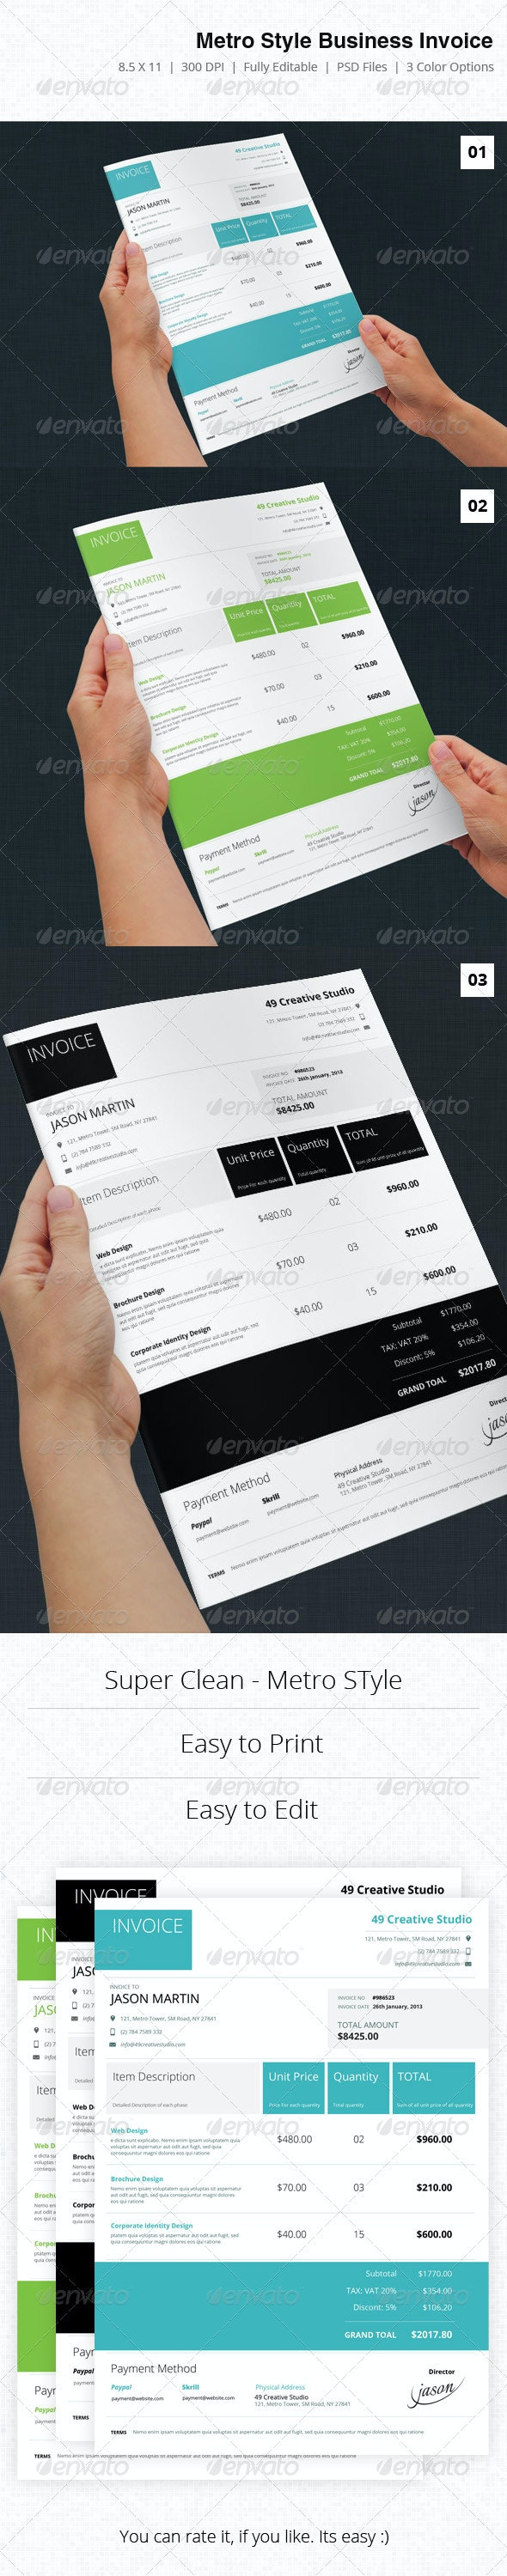 Metro Syle Business Invoice - Proposals & Invoices Stationery